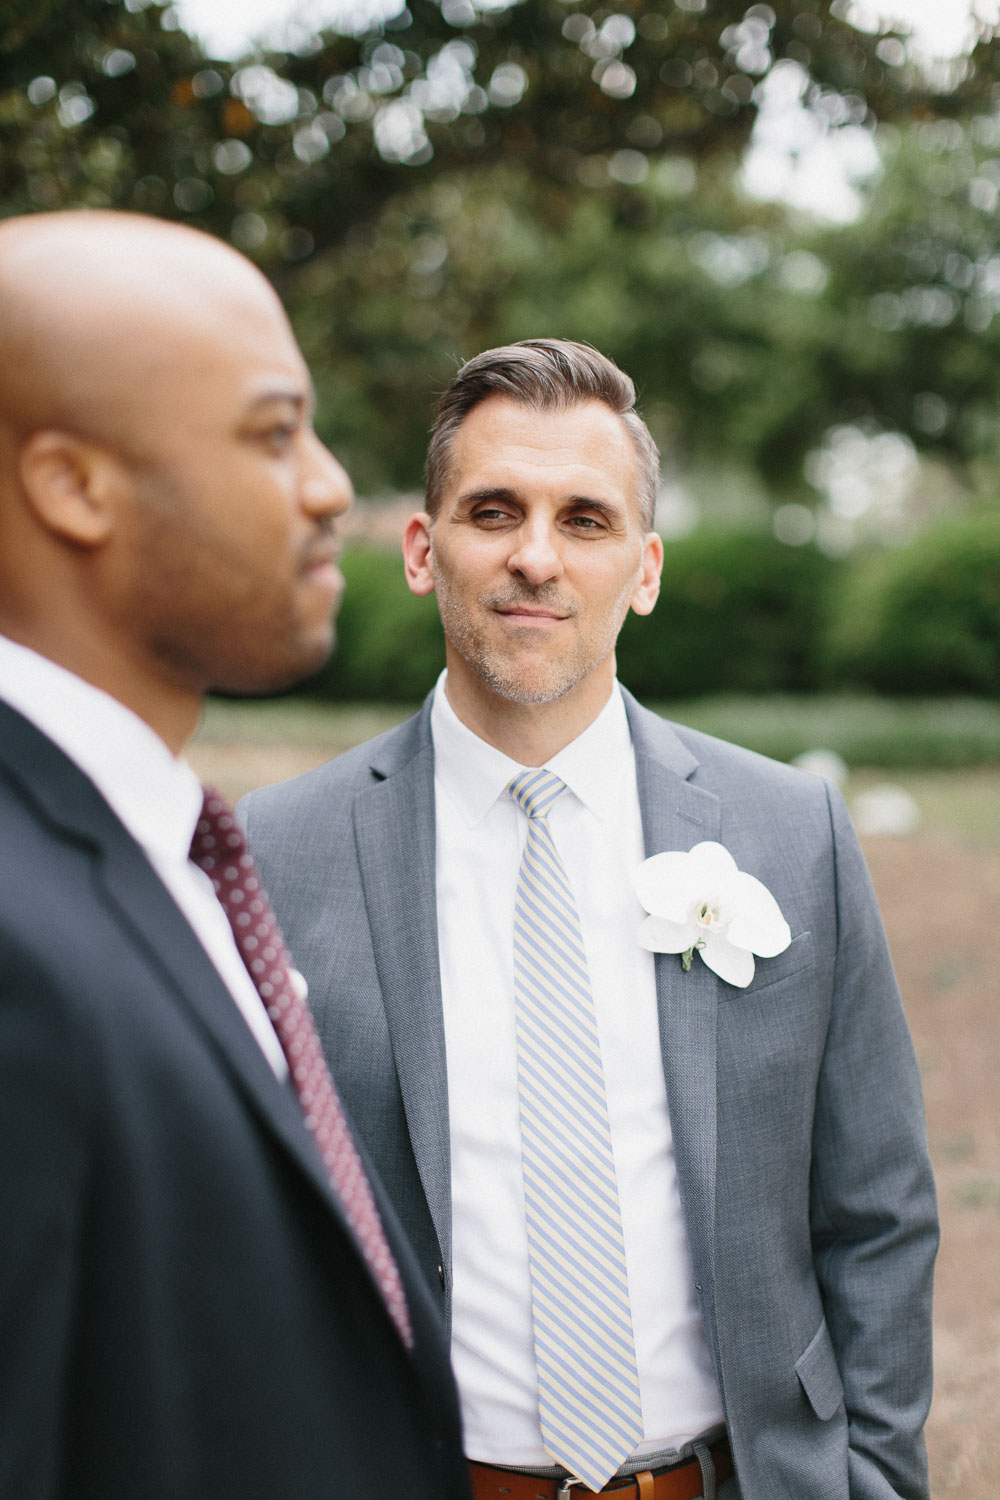 decatur_atlanta_courthouse_elopement_dekalb_gay_weddings-1360.jpg